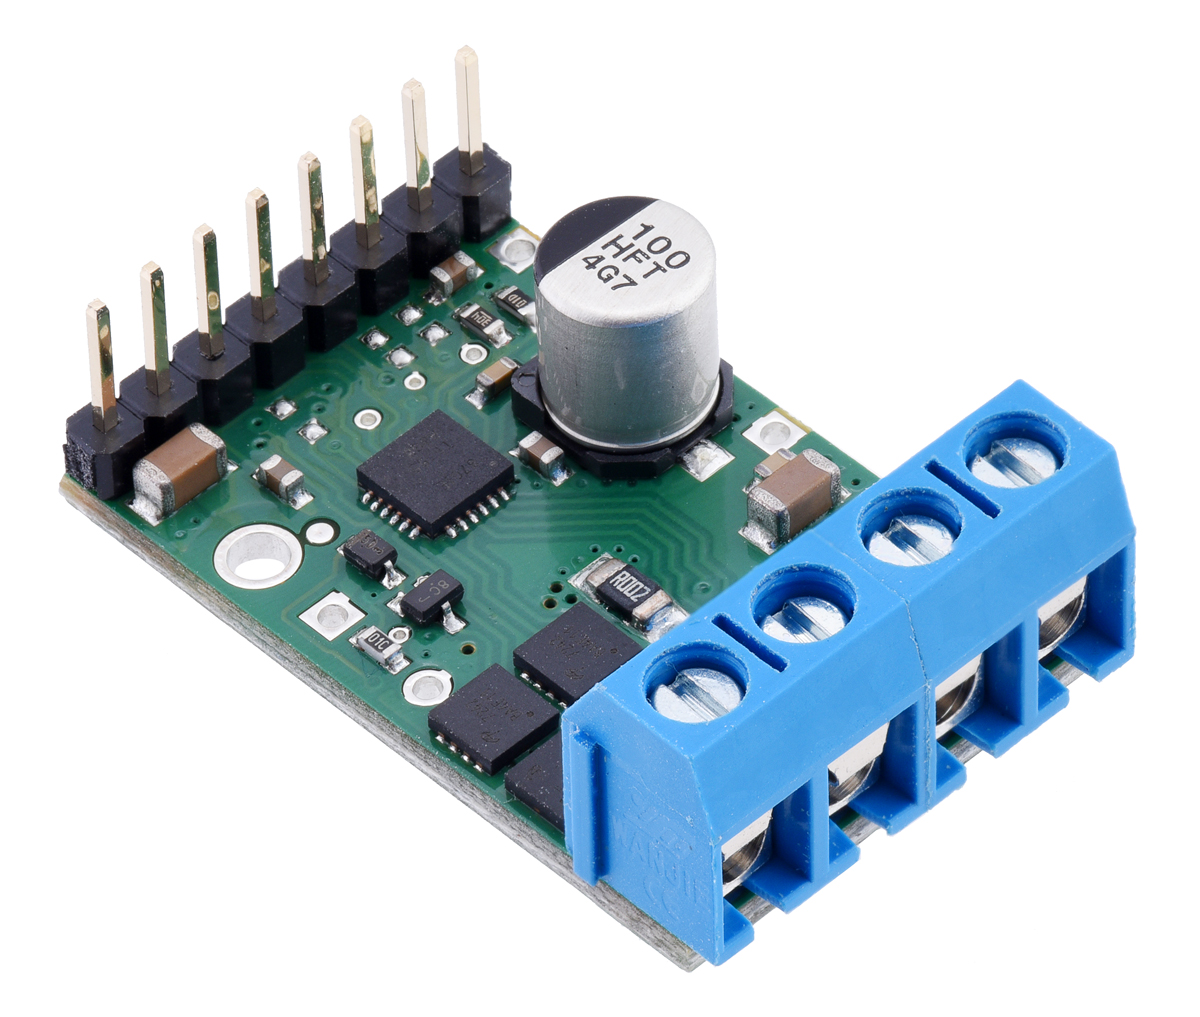 Pololu G2 High Power Motor Driver 24v13 Is A Circuit To Control Speed Uses Pulse Width Modulation Pwm 18v17 Or Assembled With Headers And Terminal Blocks